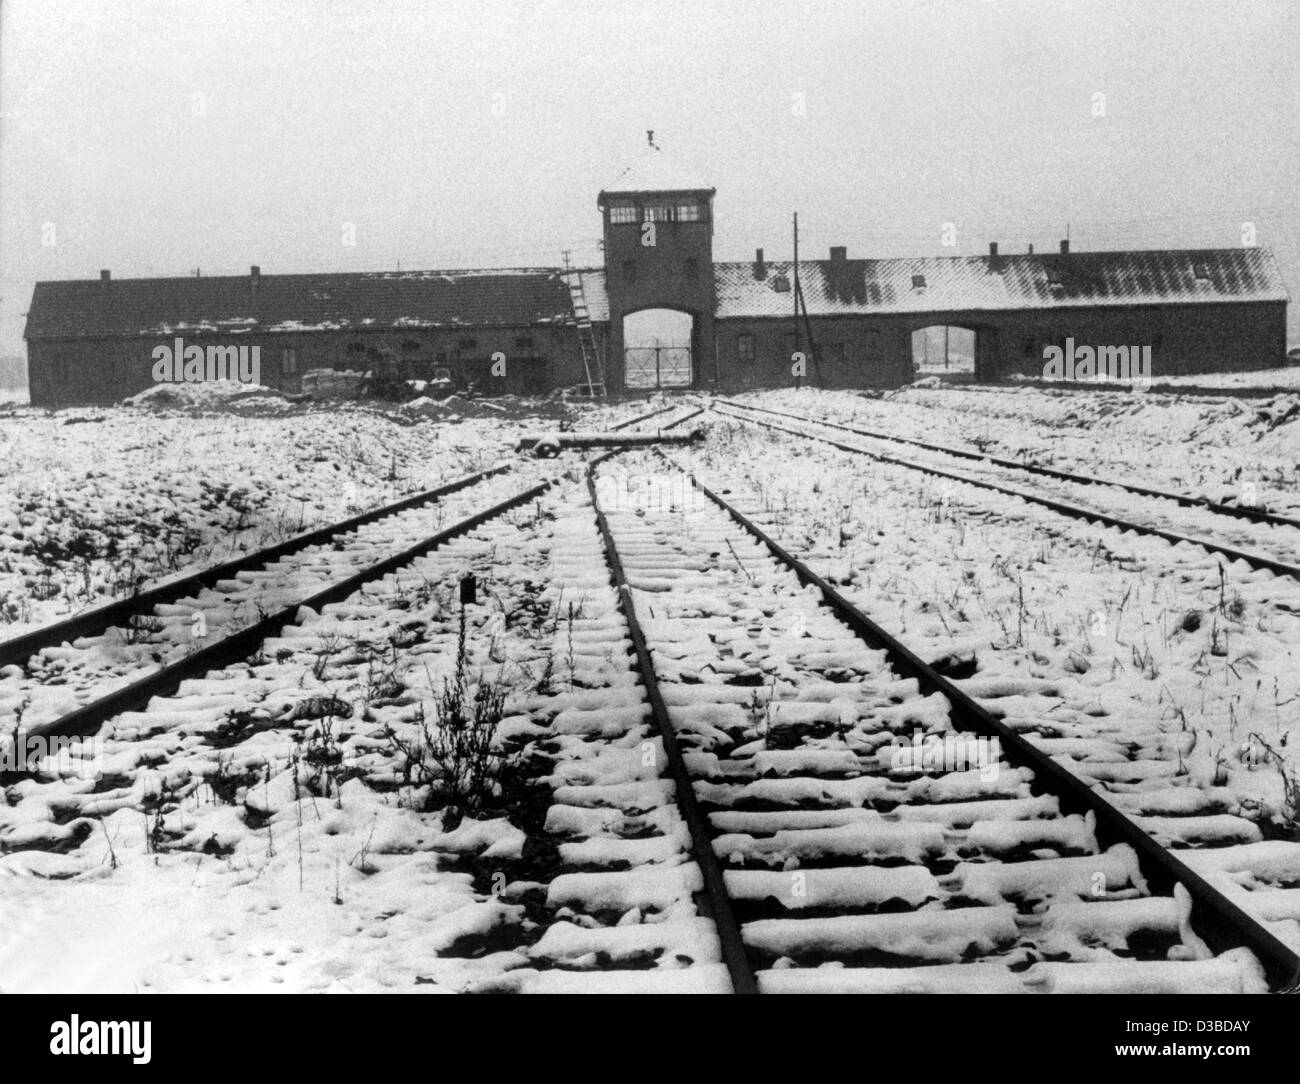 (dpa files) - A view of the snow-covered train tracks which lead to the gas chambers of the Auschwitz concentration - Stock Image